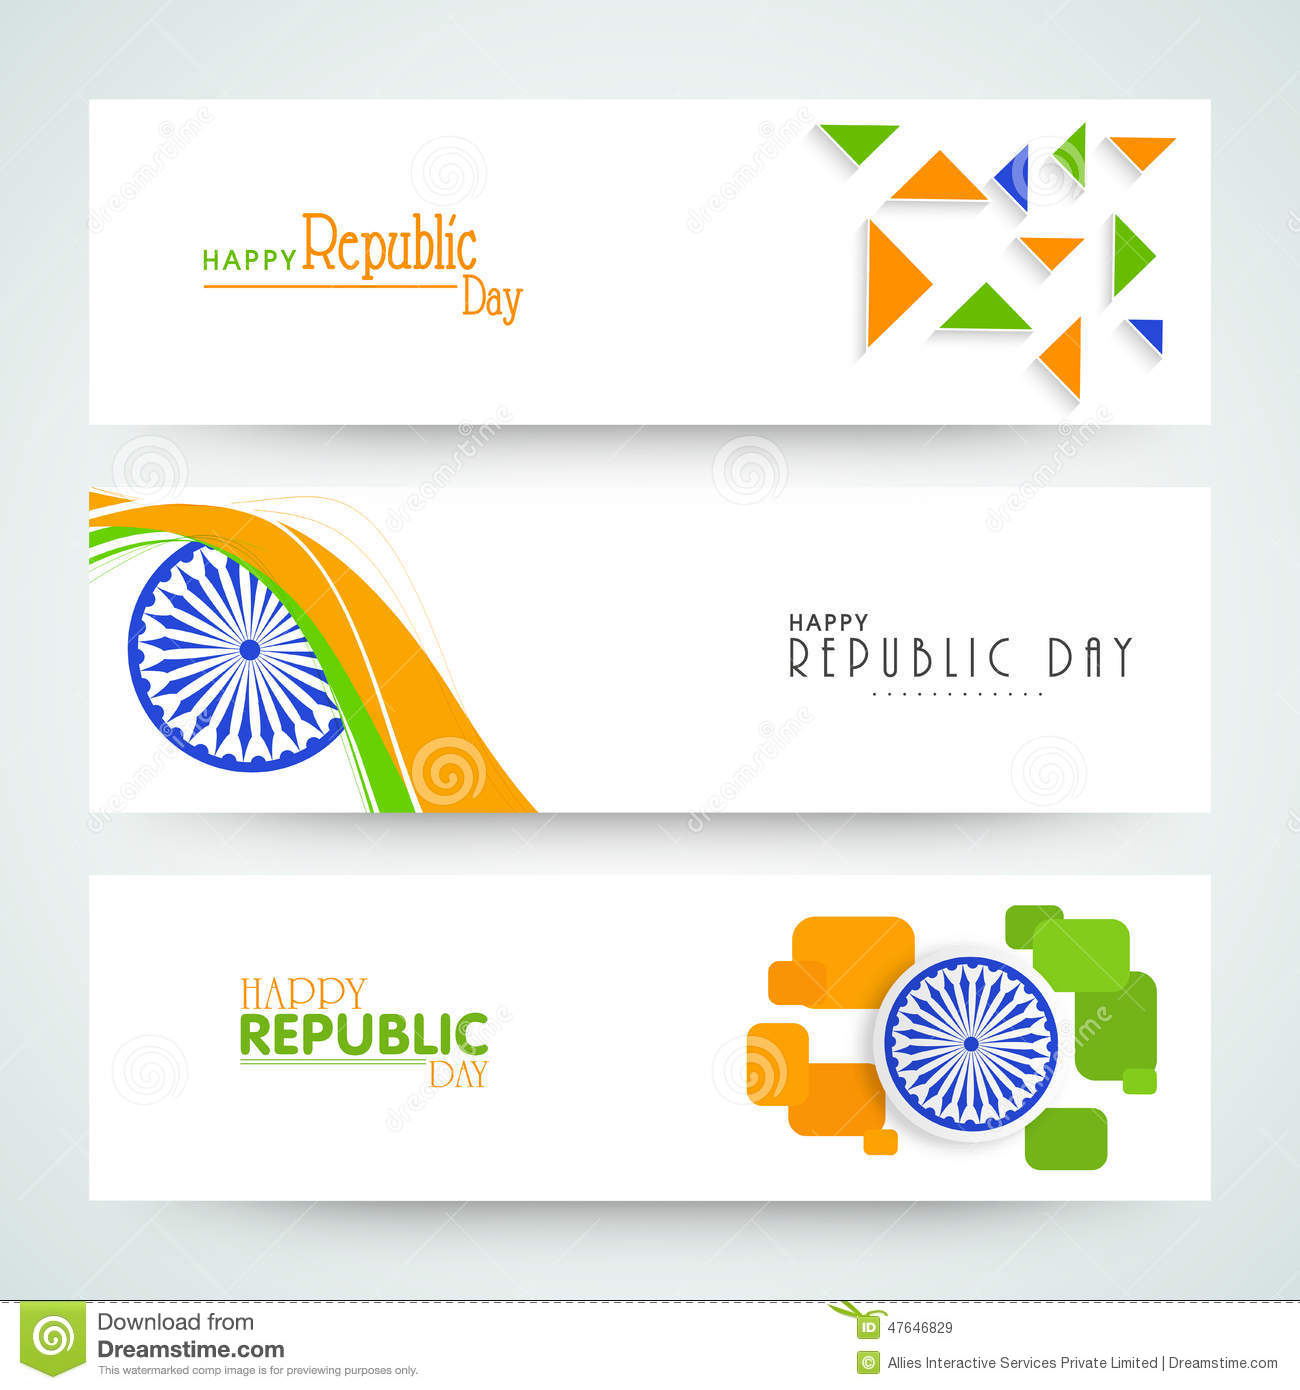 Colors website ashoka - Website Header Or Banner Of Sale With National Flag Colors Royalty Free Stock Images